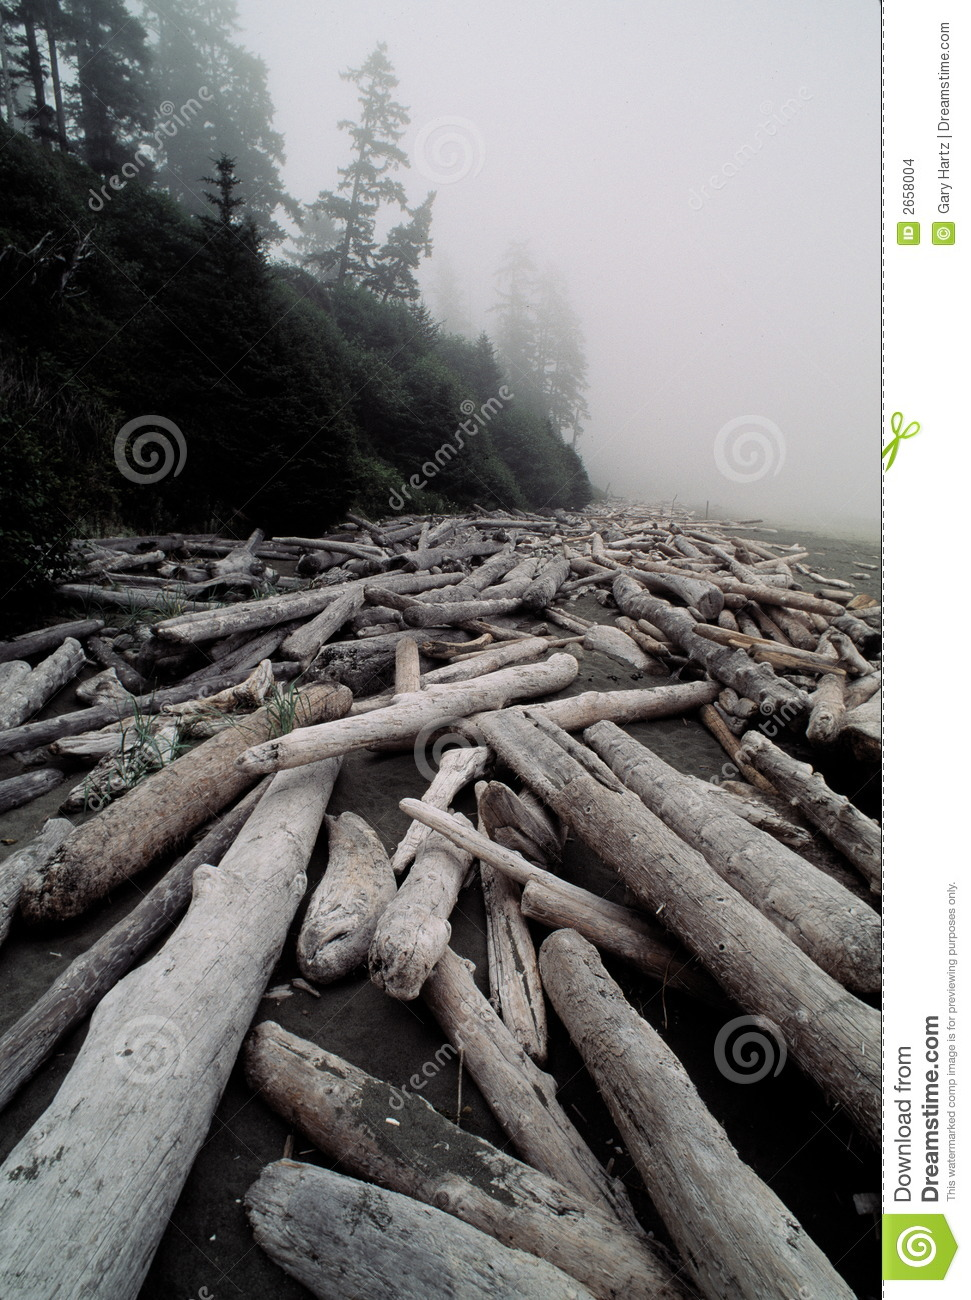 Logs on foggy beach